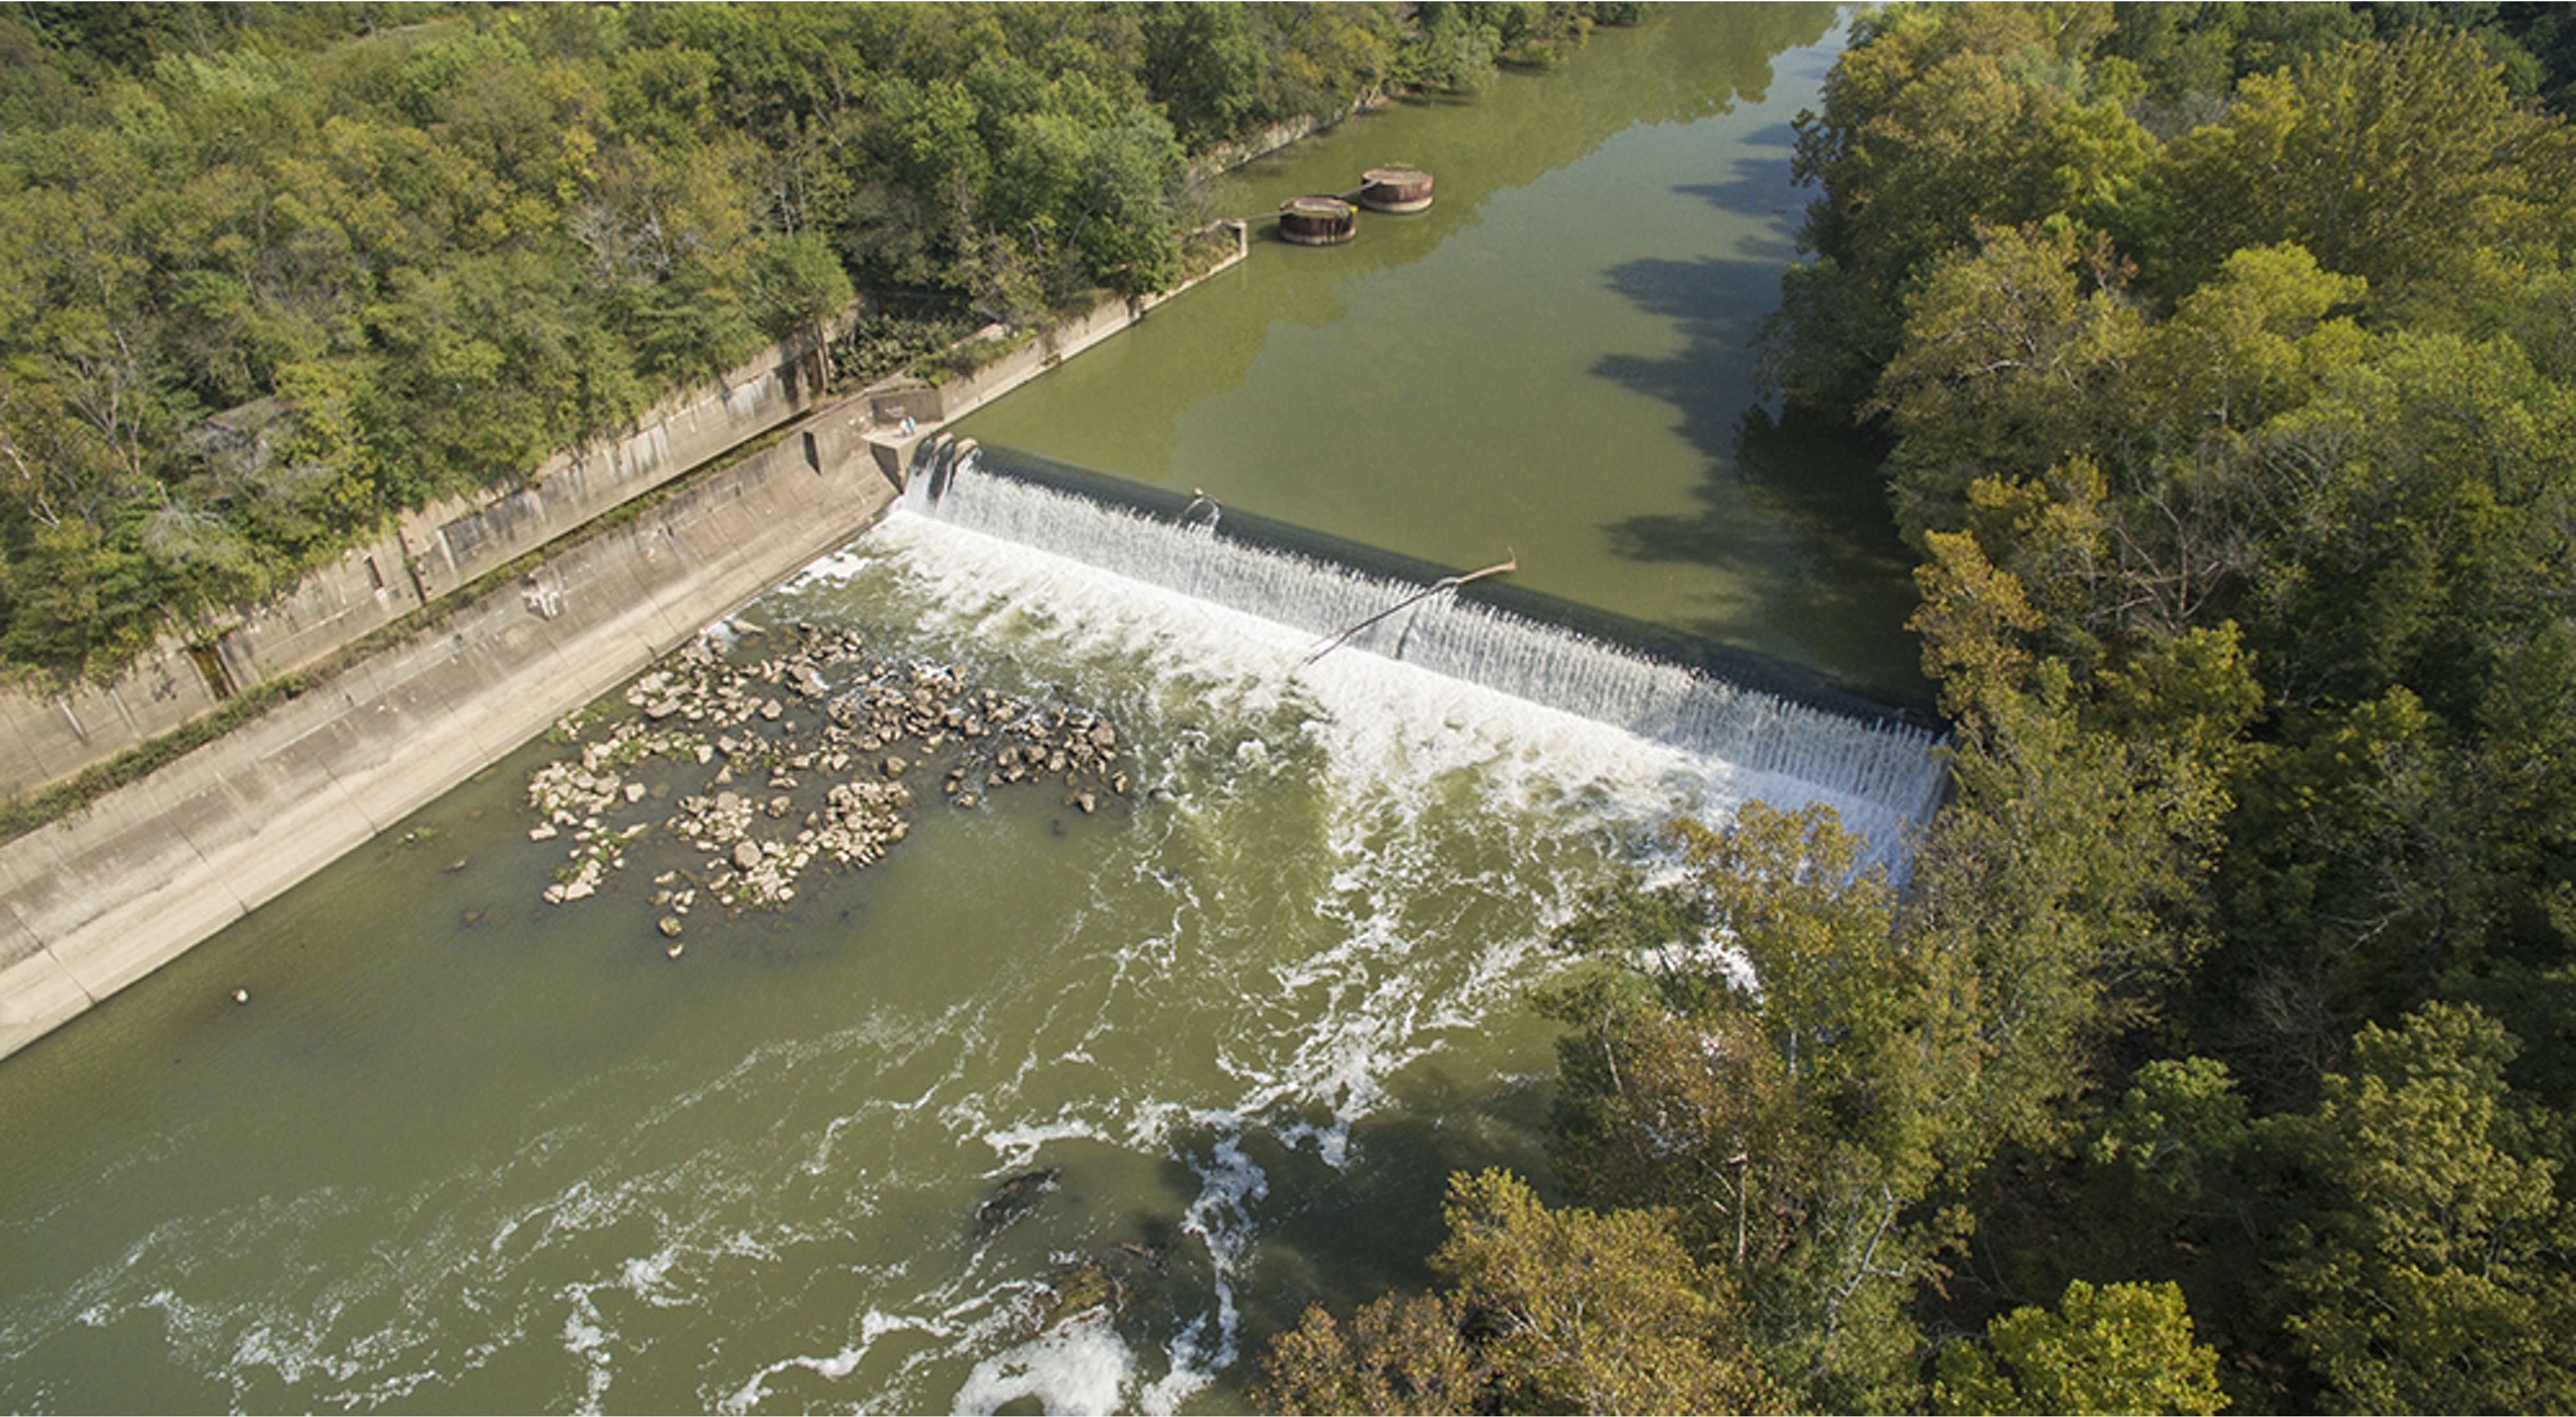 Aerial view of a large dam in the middle of a river.